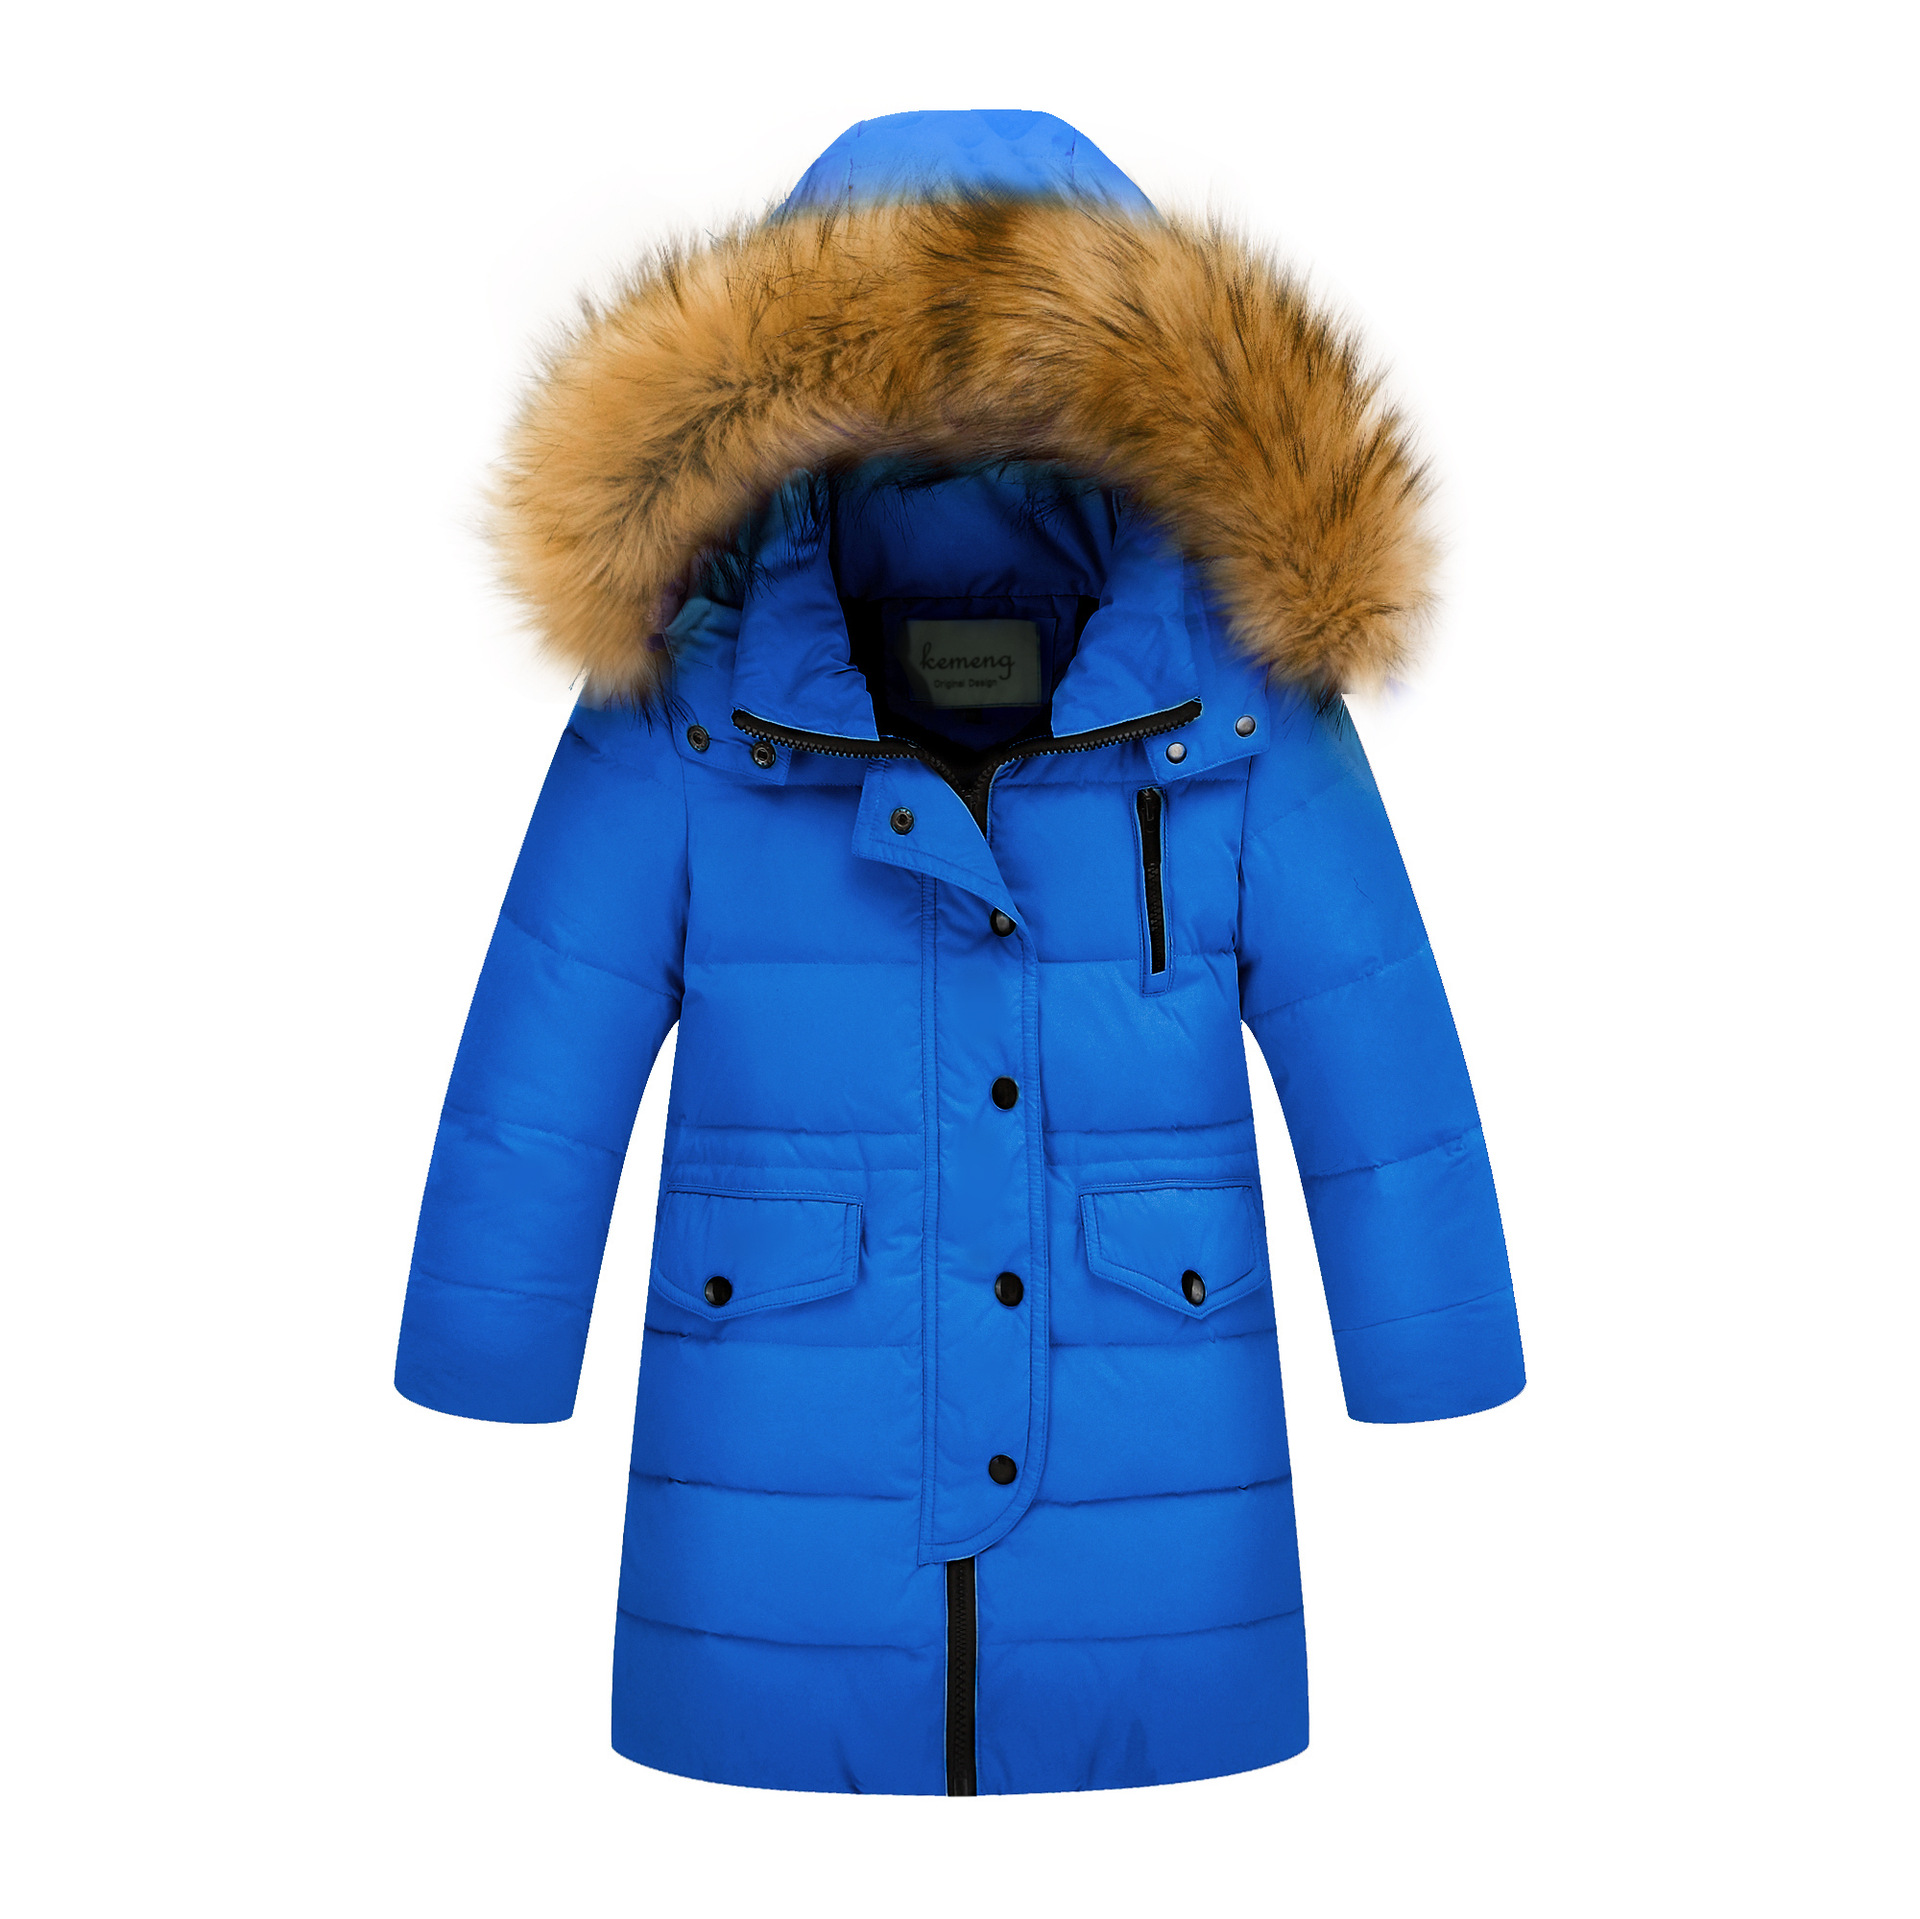 Baby Girls Boys Clothing Children Jackets Duck Down Parkas Kids Girls Winter Coat Winter Outerwear Thicken Warm Clothes kids clothes children jackets for boys girls winter white duck down jacket coats thick warm clothing kids hooded parkas coat